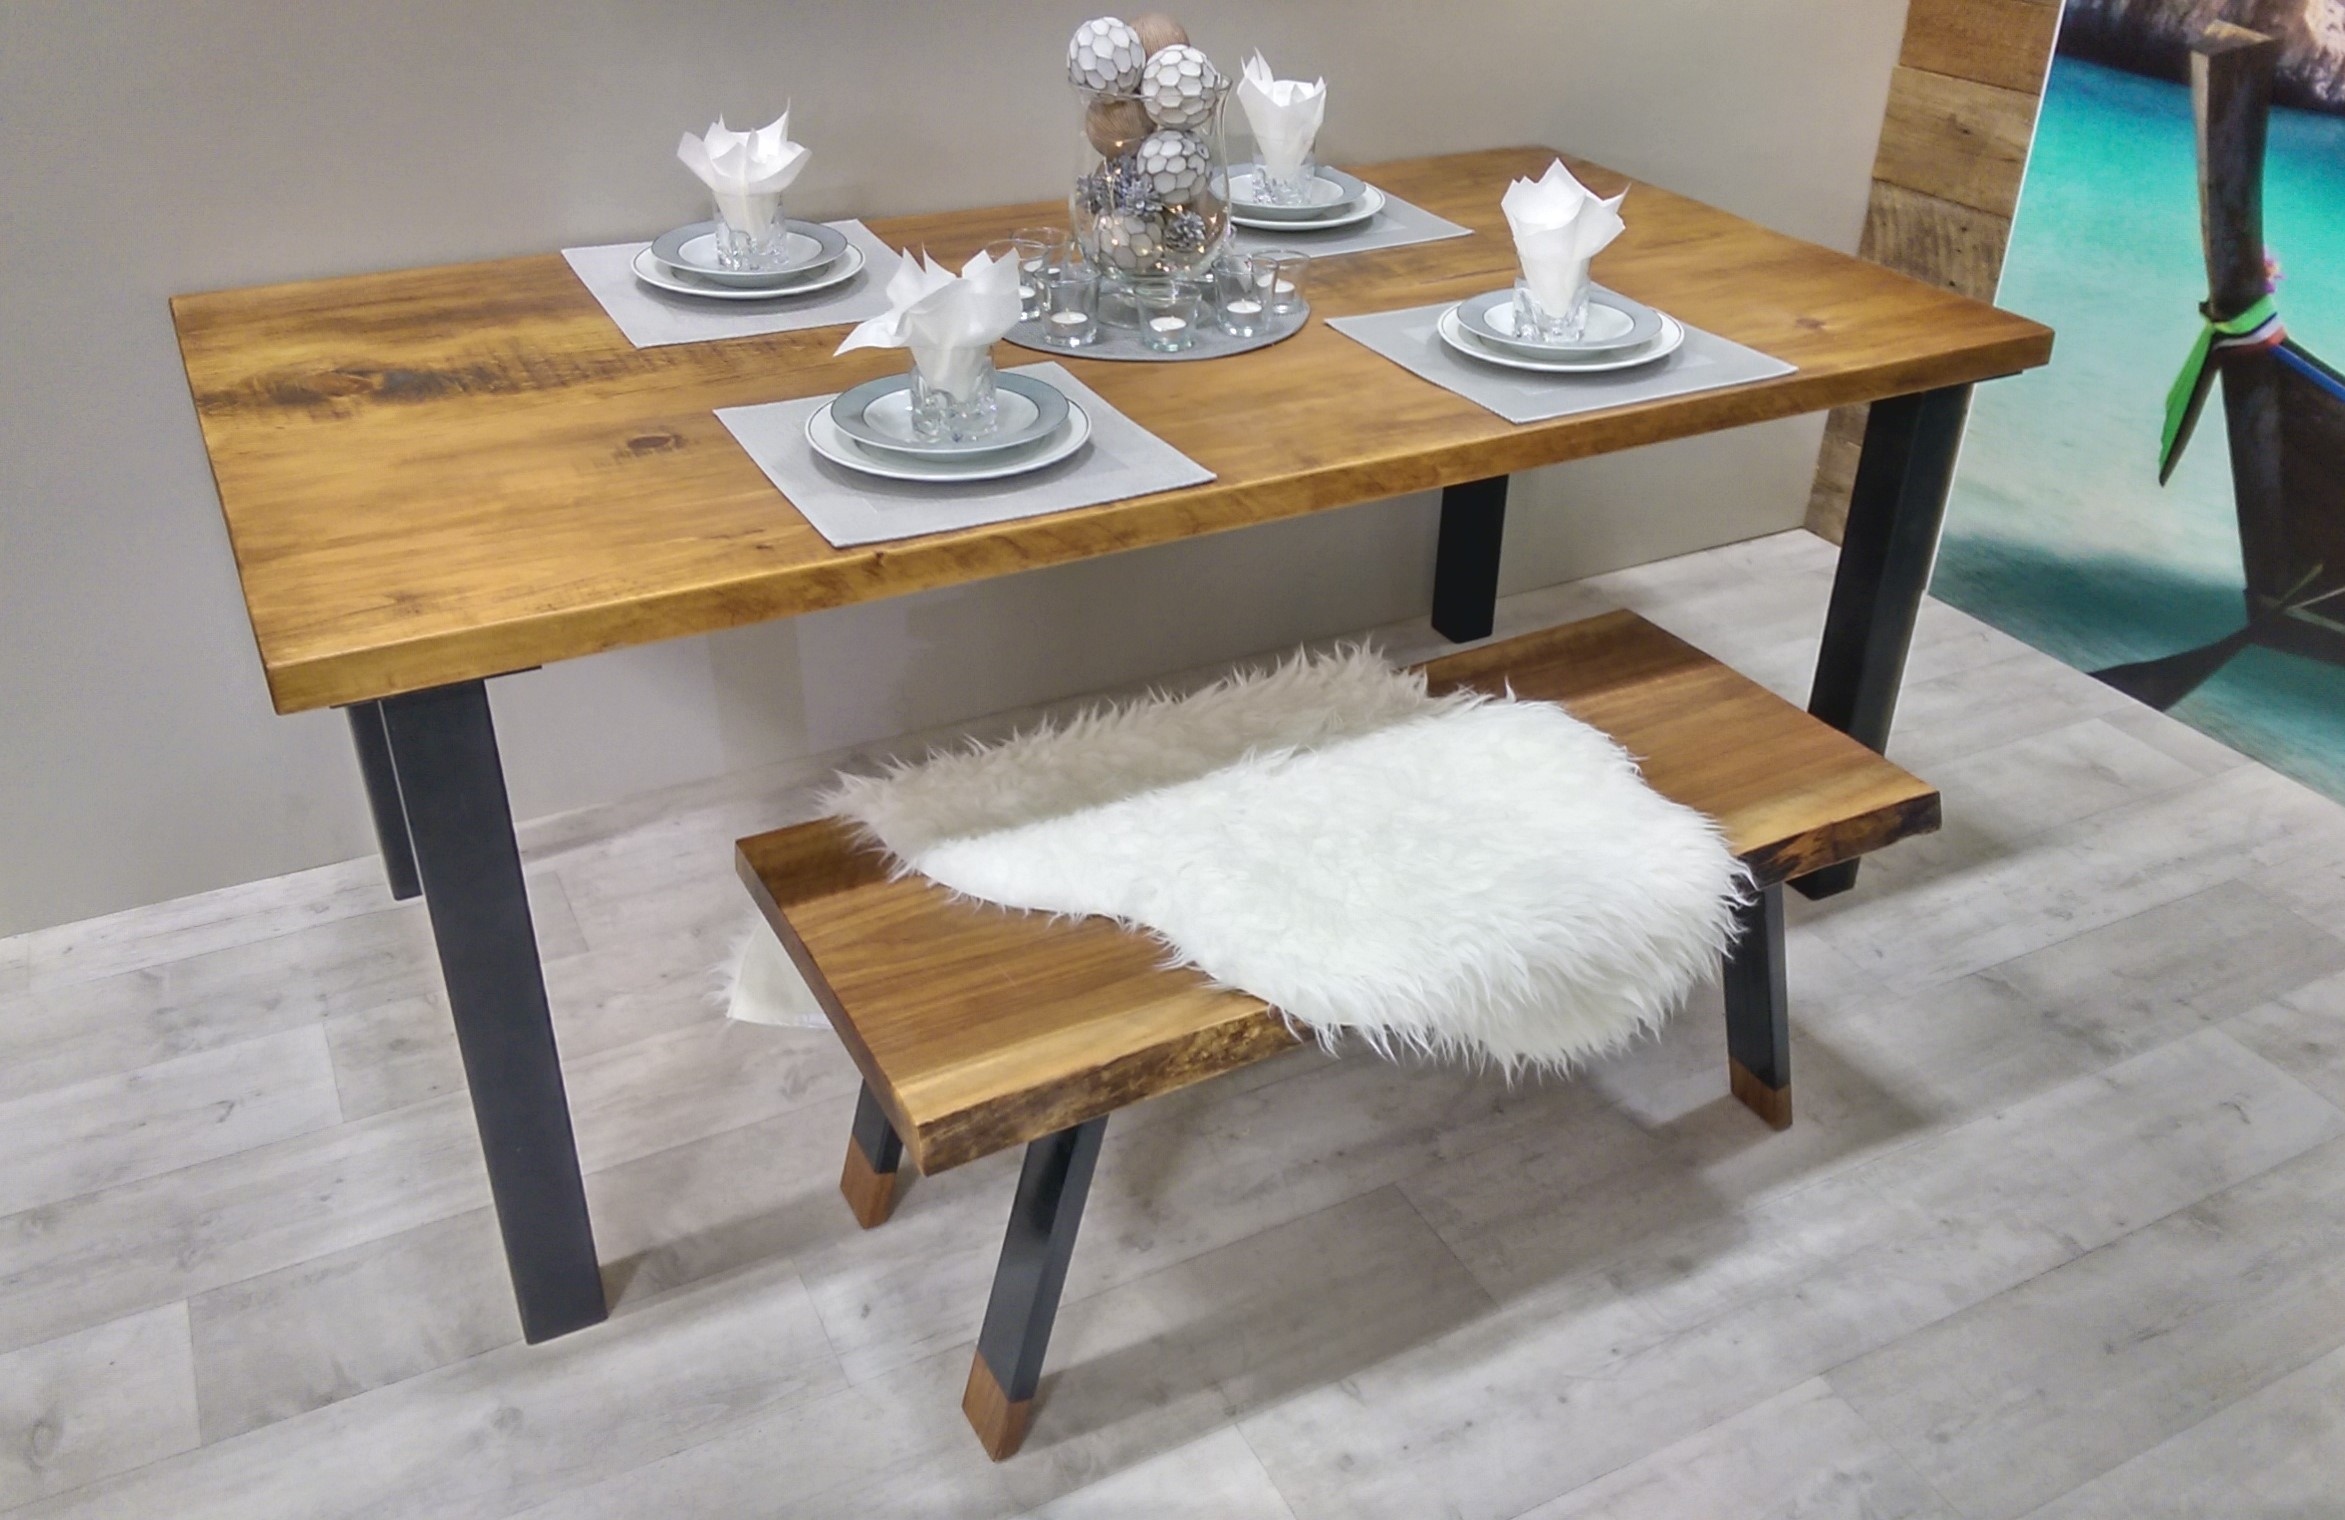 Table de cuisine rustika en bois m tal table d ner for Table cuisine bois massif